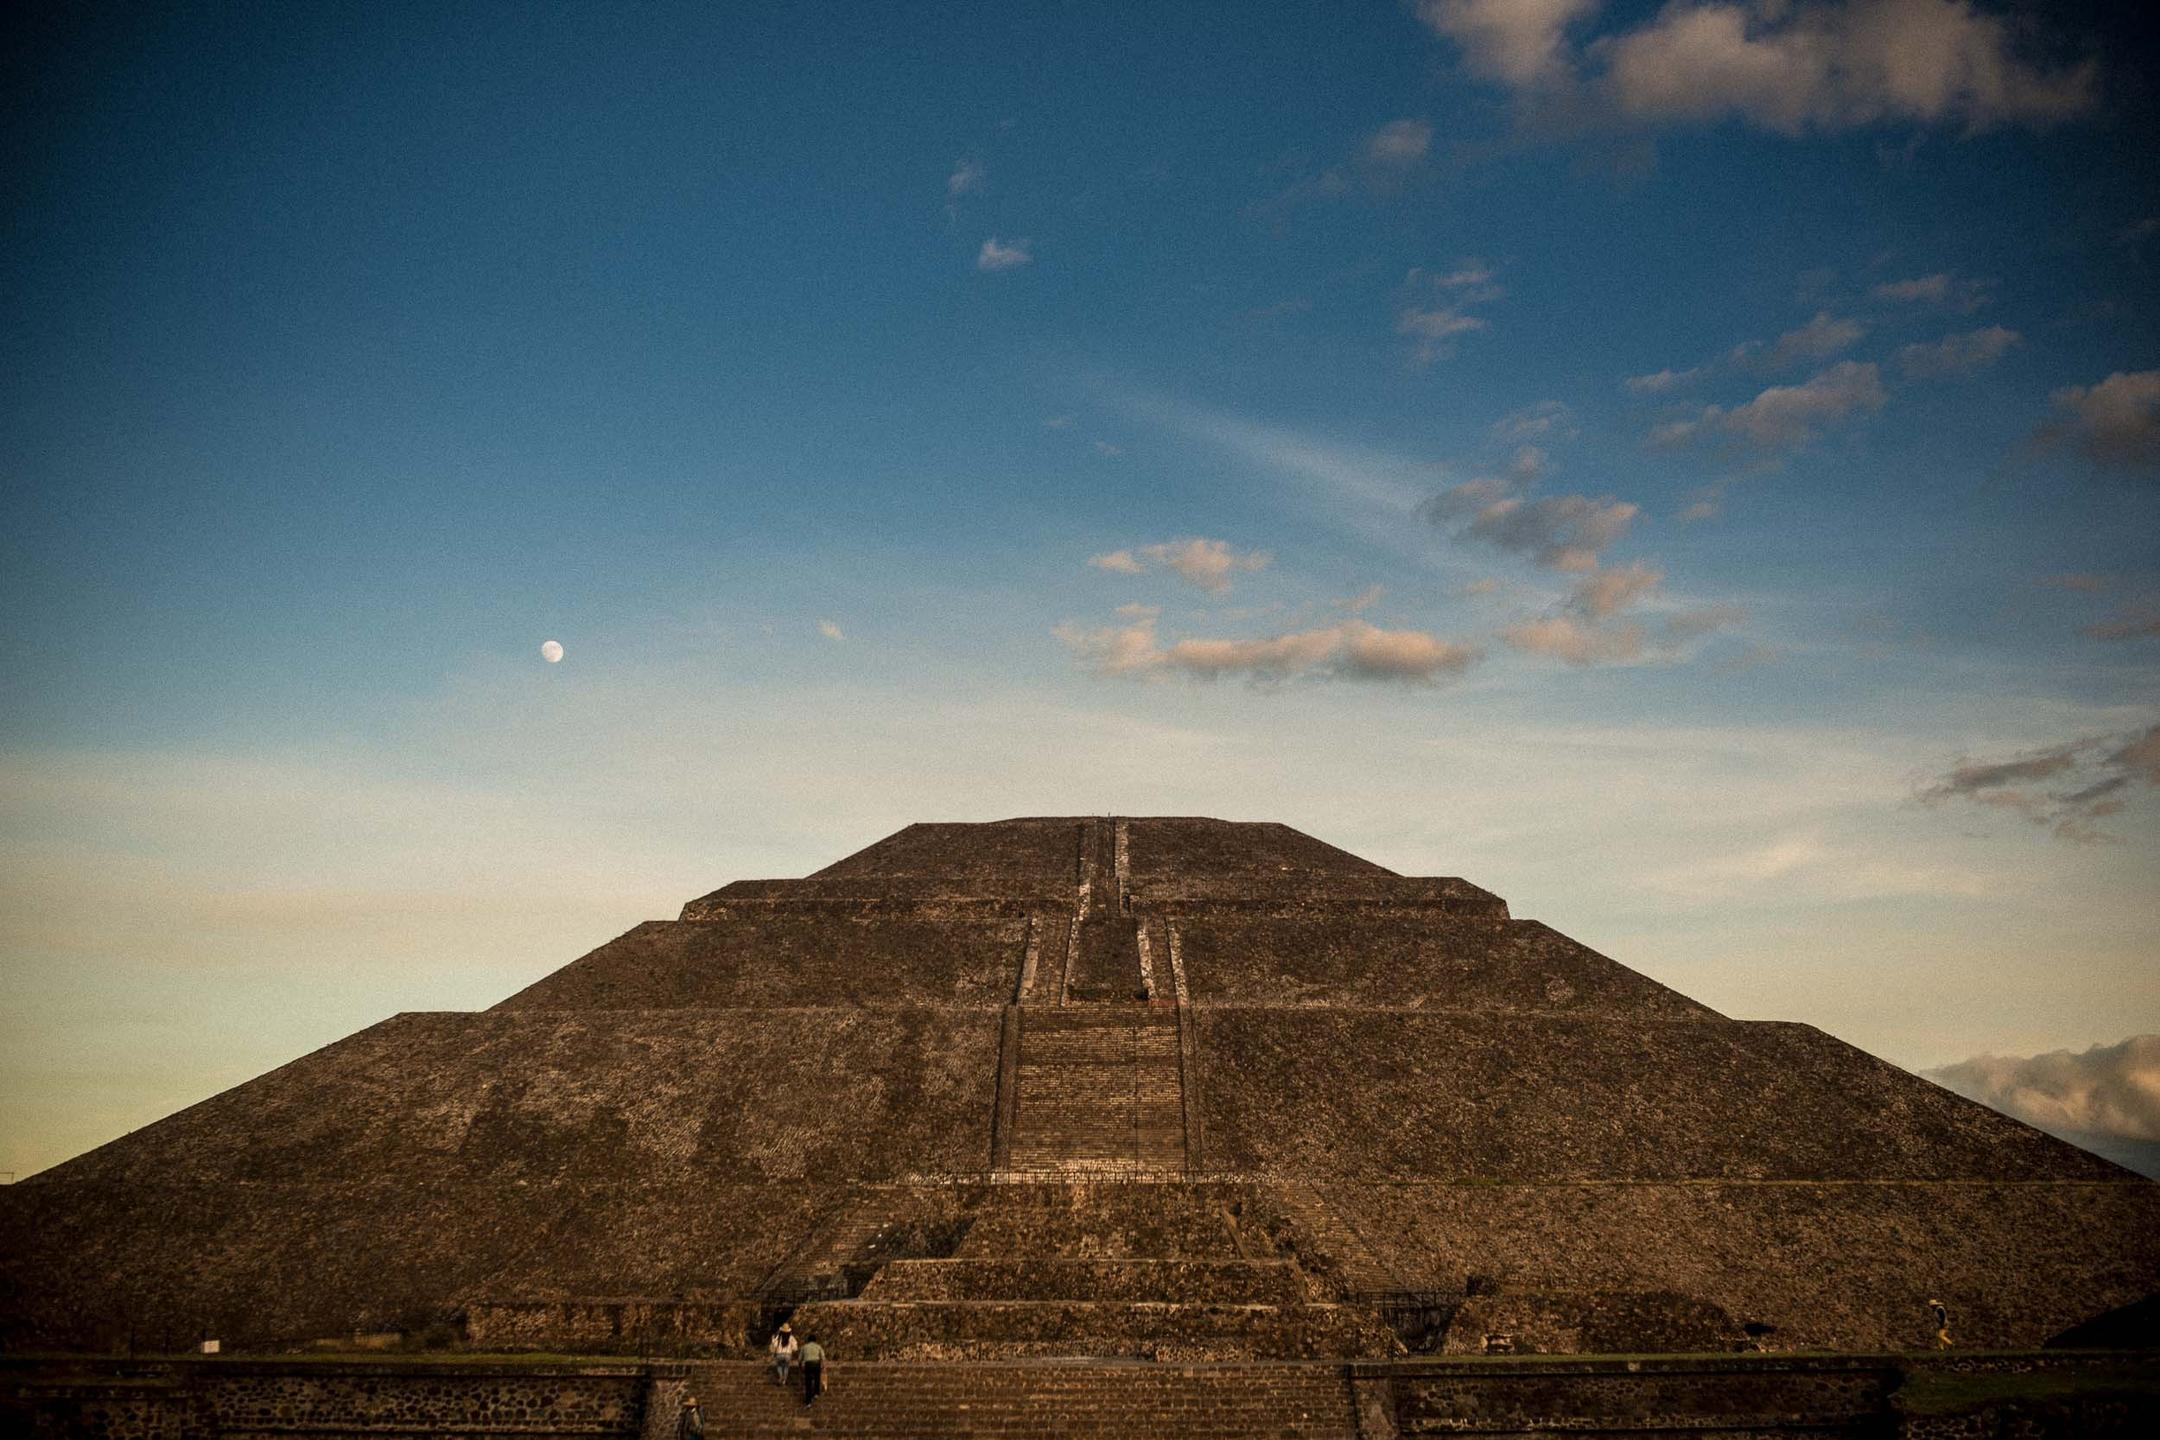 Teotihuacan and the Moon